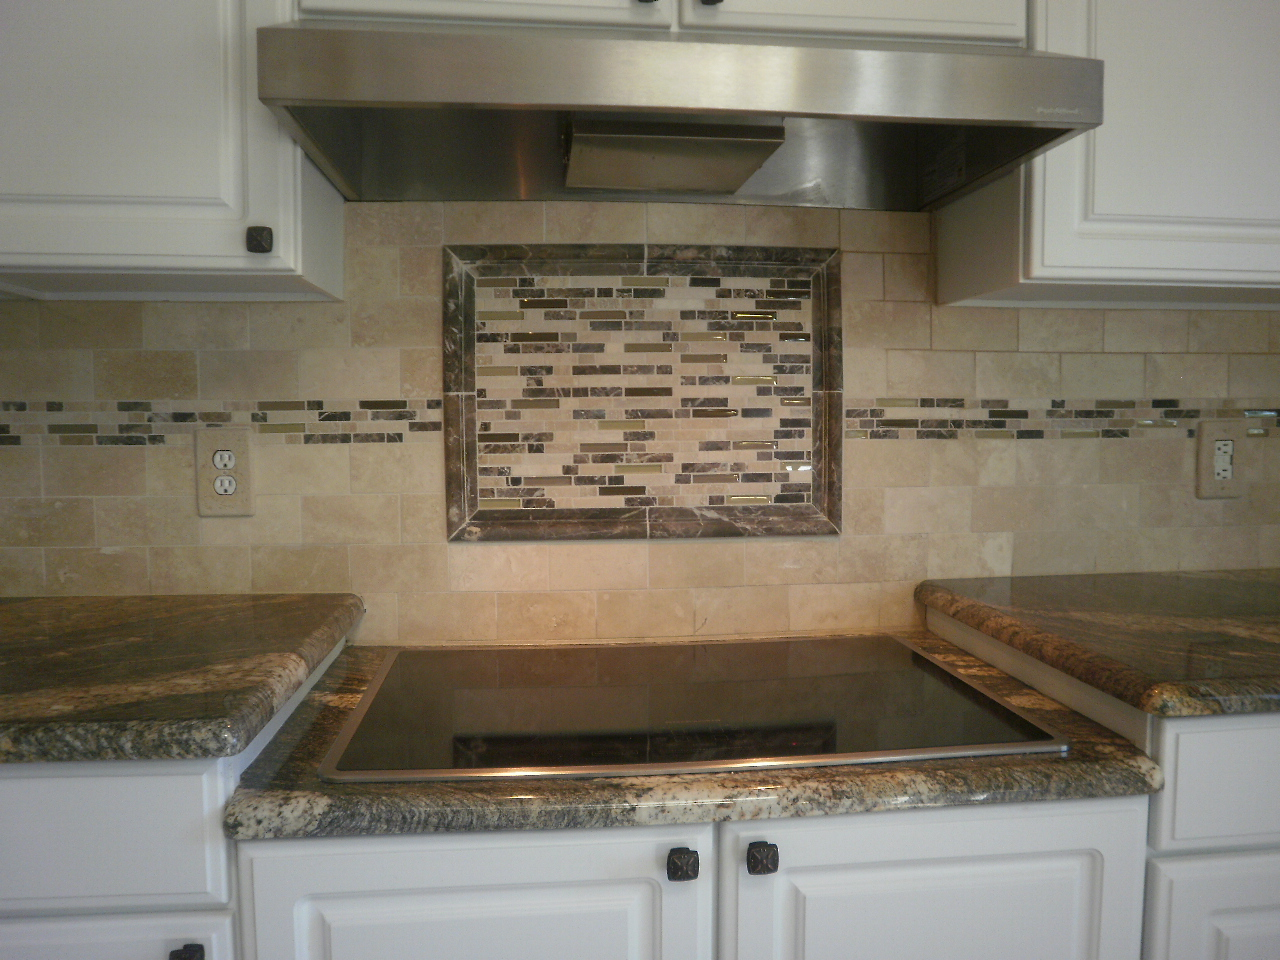 The astonishing Grey subway tile backsplash kitchen digital imagery